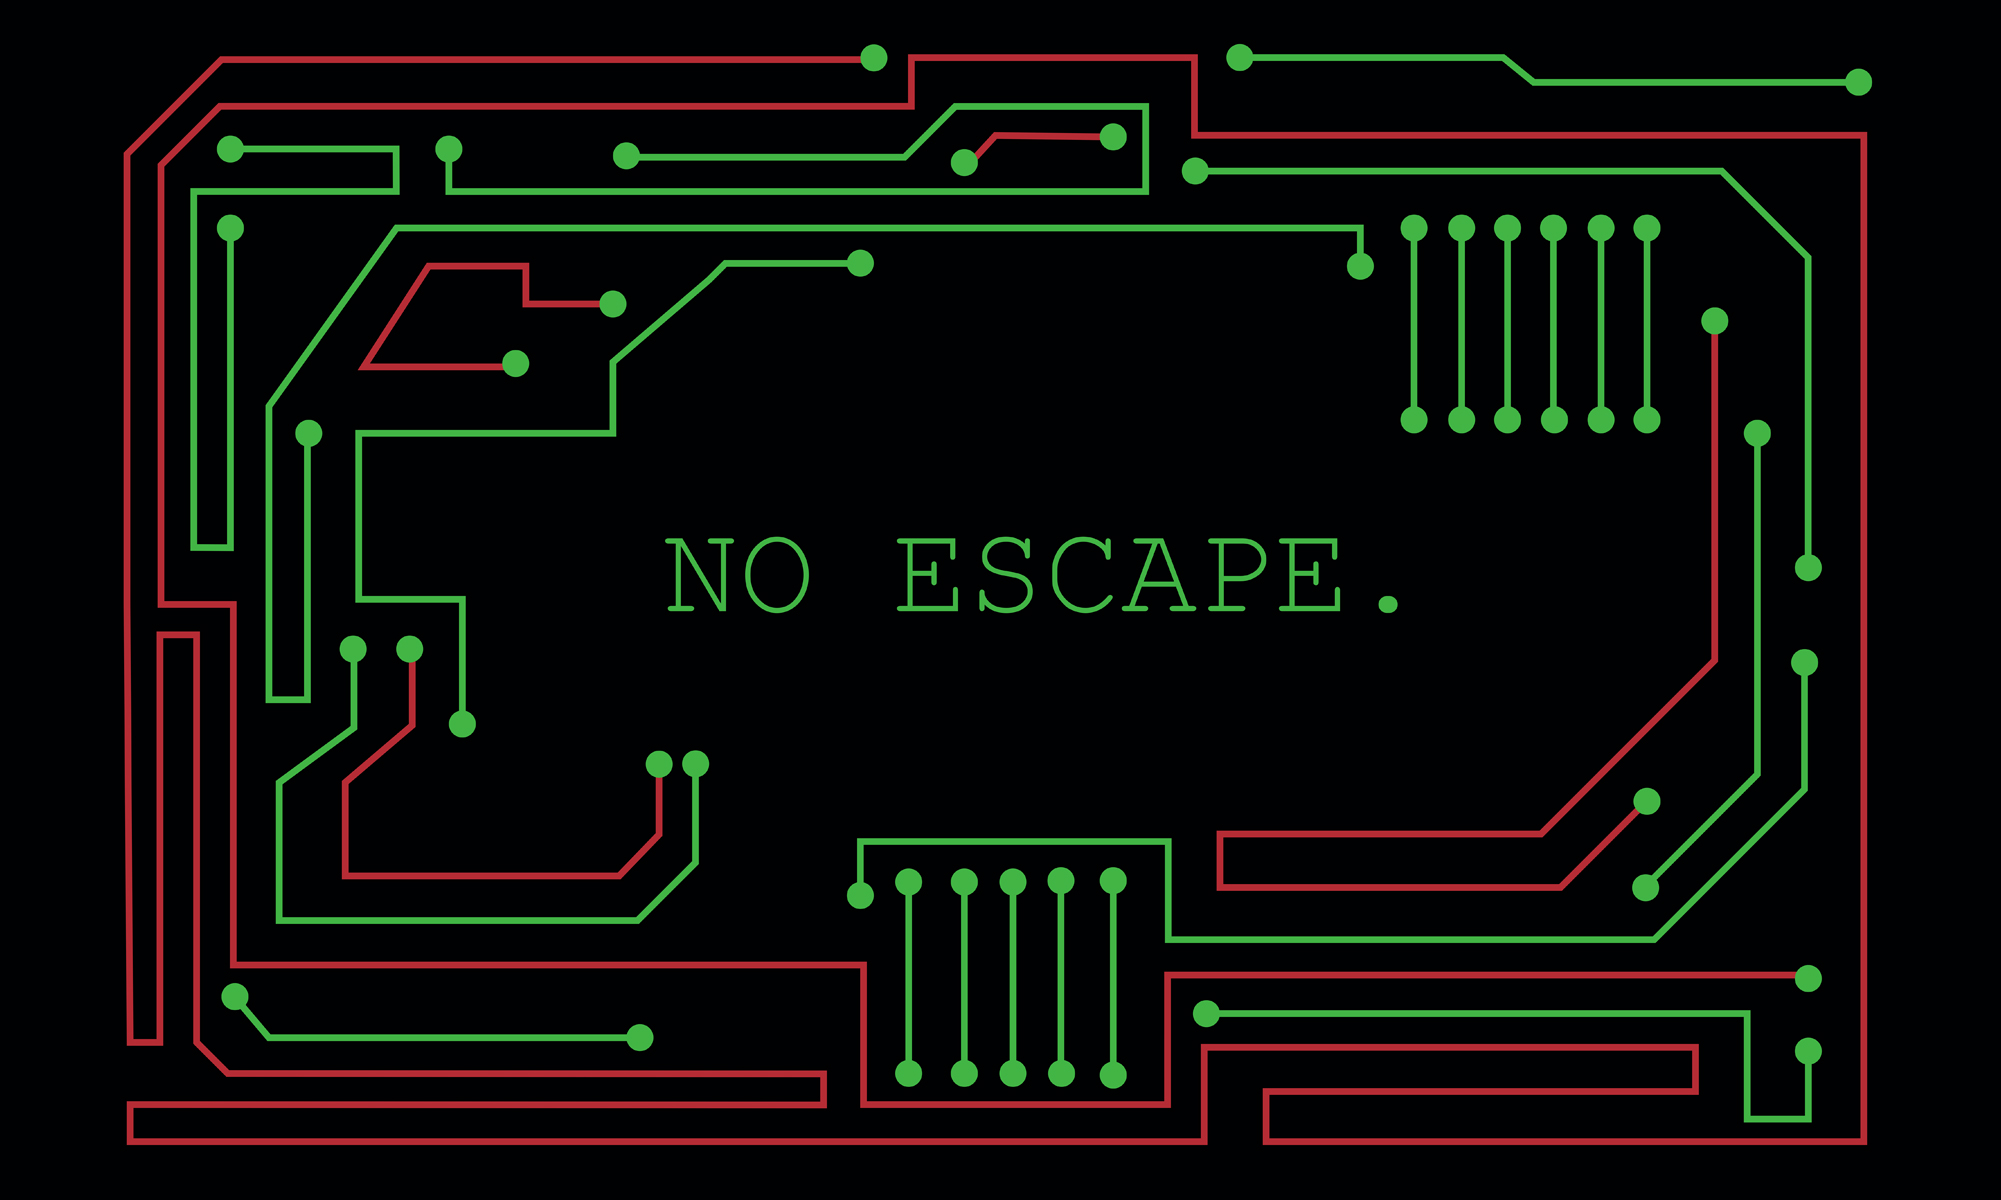 No escape (from this maze)